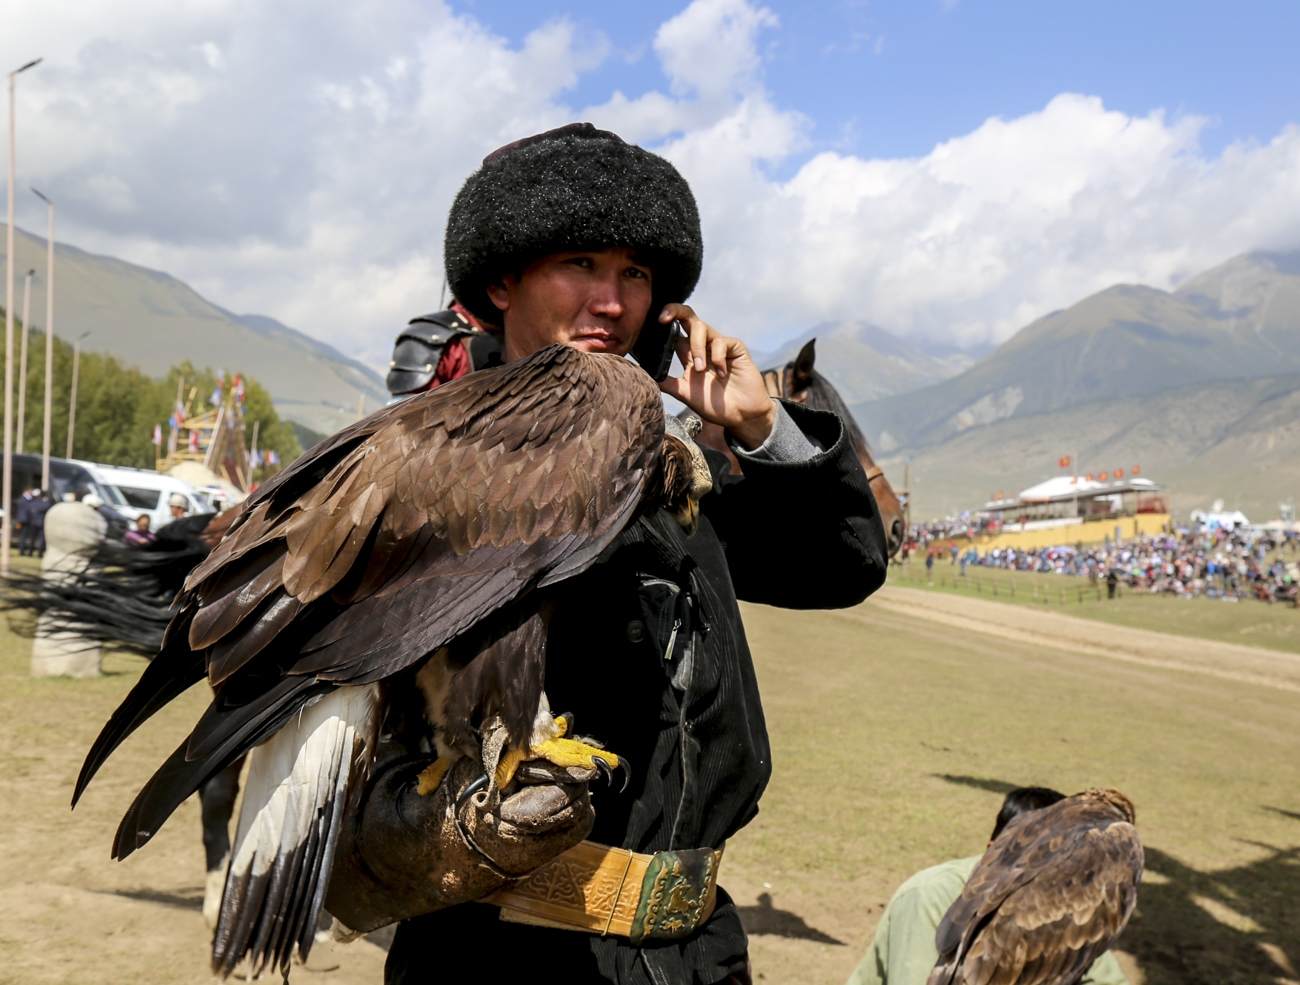 Falcon hunter